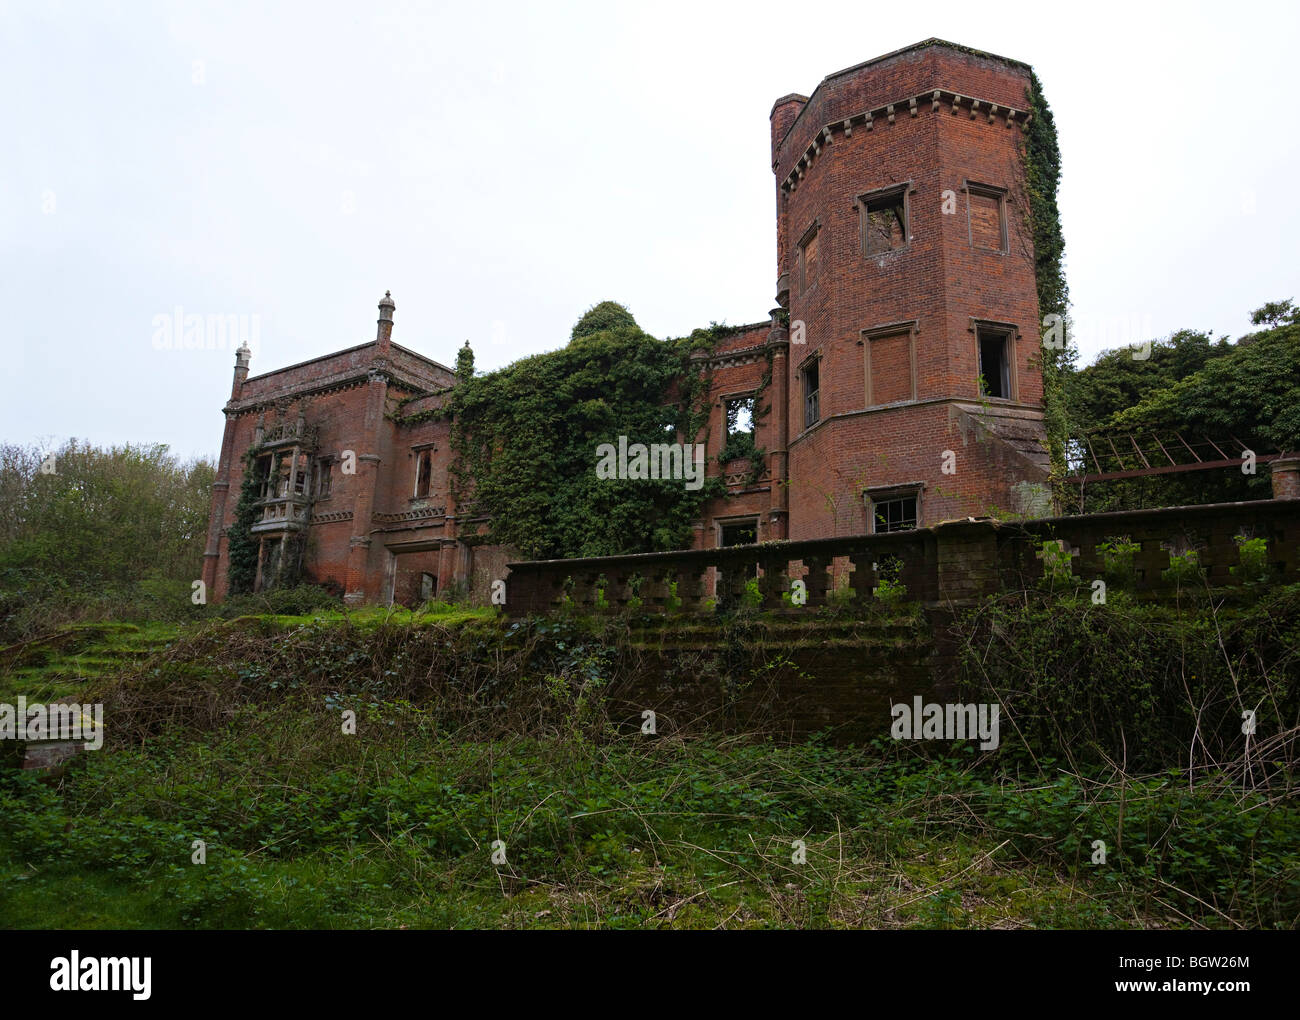 Rougham Hall, a derelict house built around 1834 - Stock Image